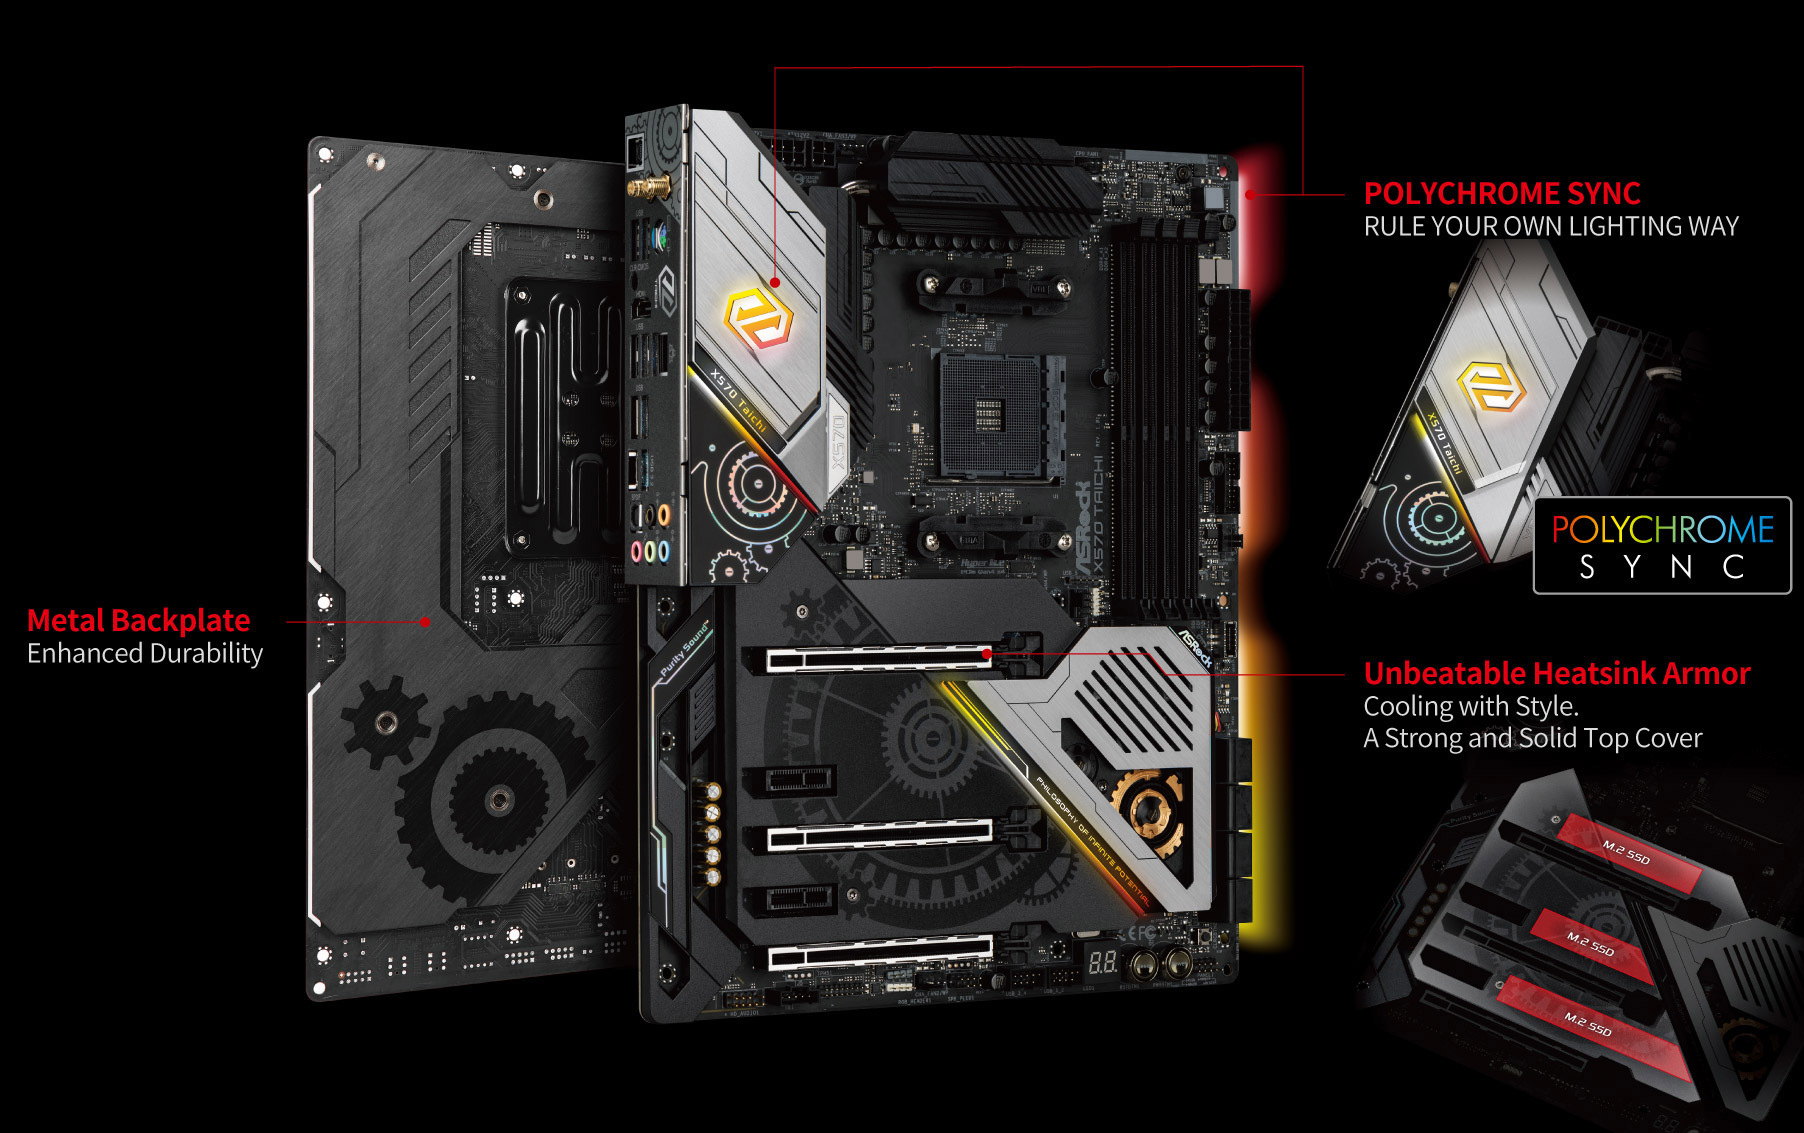 Two ASRock X570 Taichi Motherboard Back to Back along with text and graphics pointing out the following features: Metal backplate for enhanced durability, Polychrome Sync to rule your own lighting way and unbeatable heatsink armor to cool with style via this strong and solid top cover